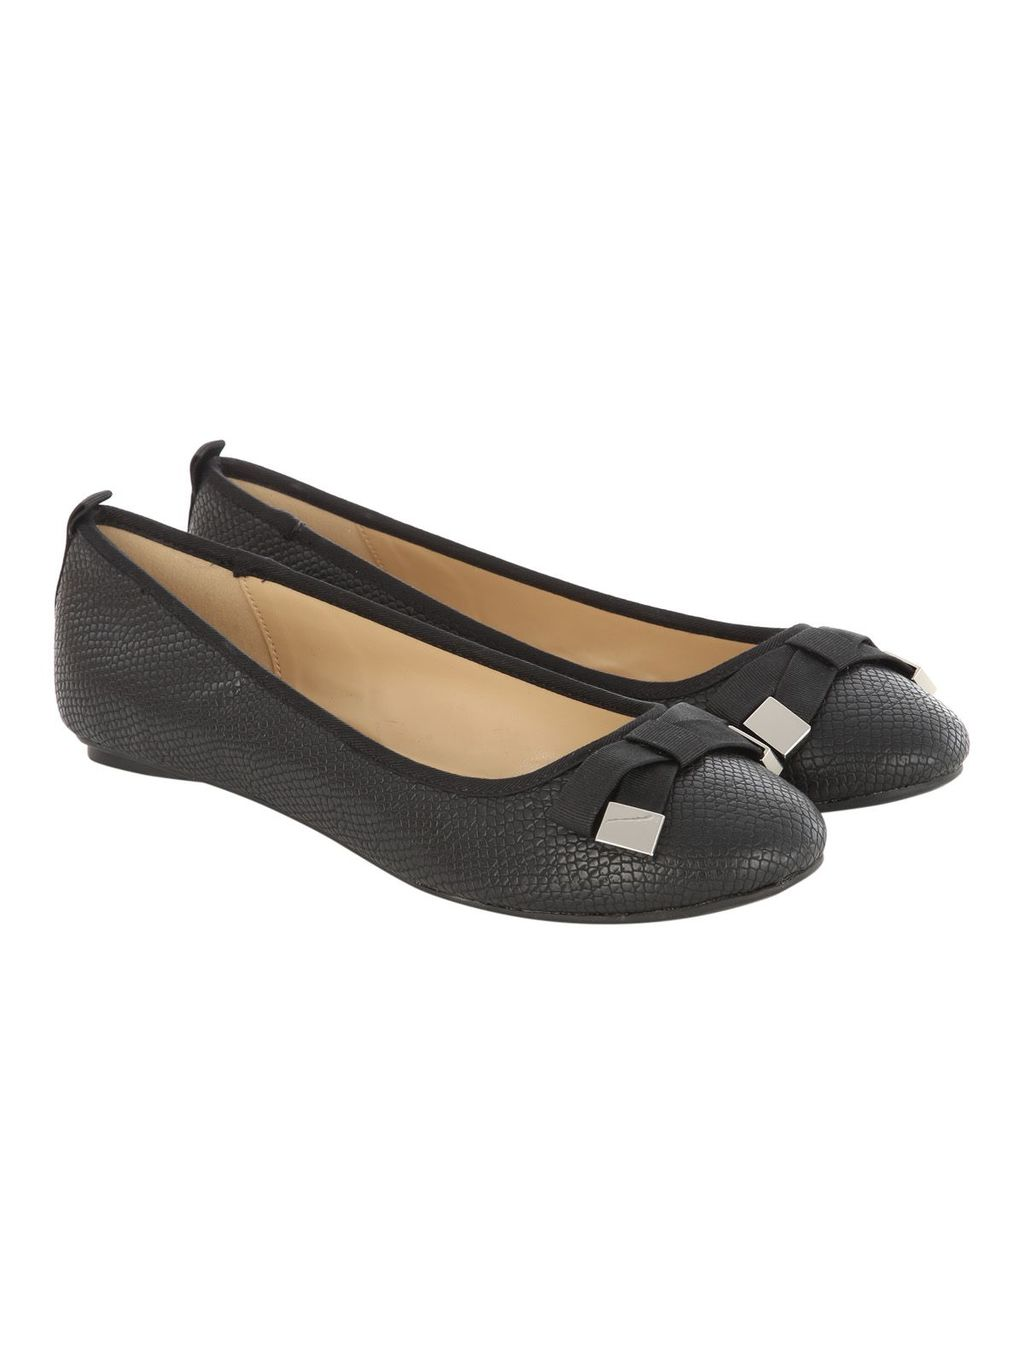 Black Bow Detail Round Flat Shoe, Black - predominant colour: black; occasions: work; material: faux leather; heel height: flat; toe: round toe; style: ballerinas / pumps; finish: plain; pattern: plain; embellishment: bow; season: s/s 2016; wardrobe: basic